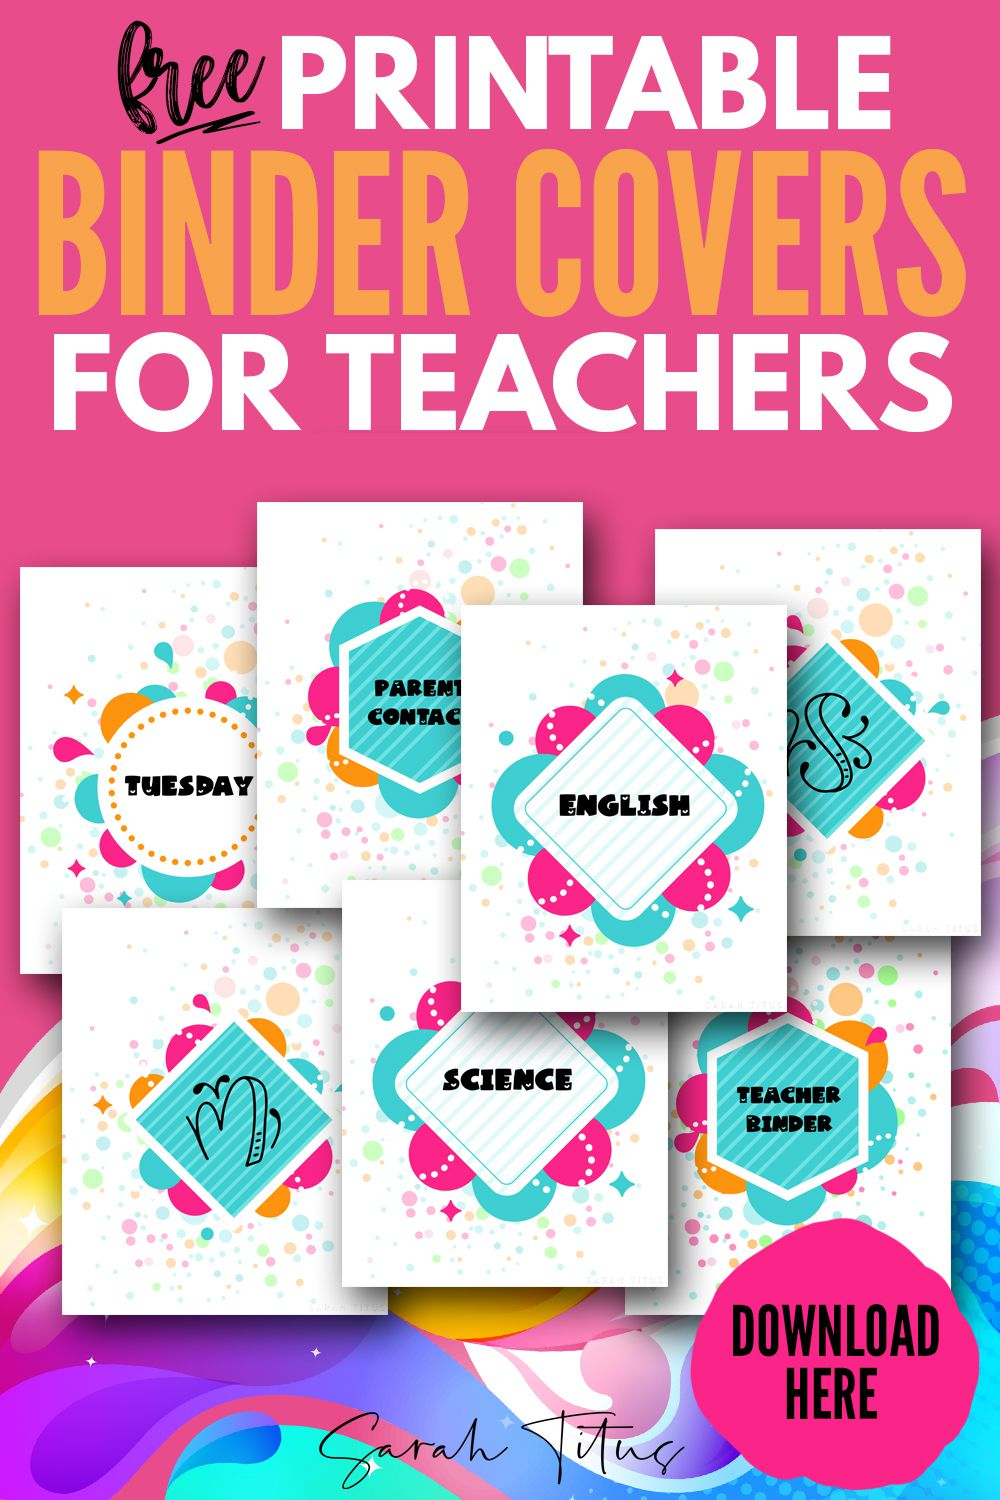 003 Fearsome Cute Binder Cover Template Free Printable Highest Clarity Full